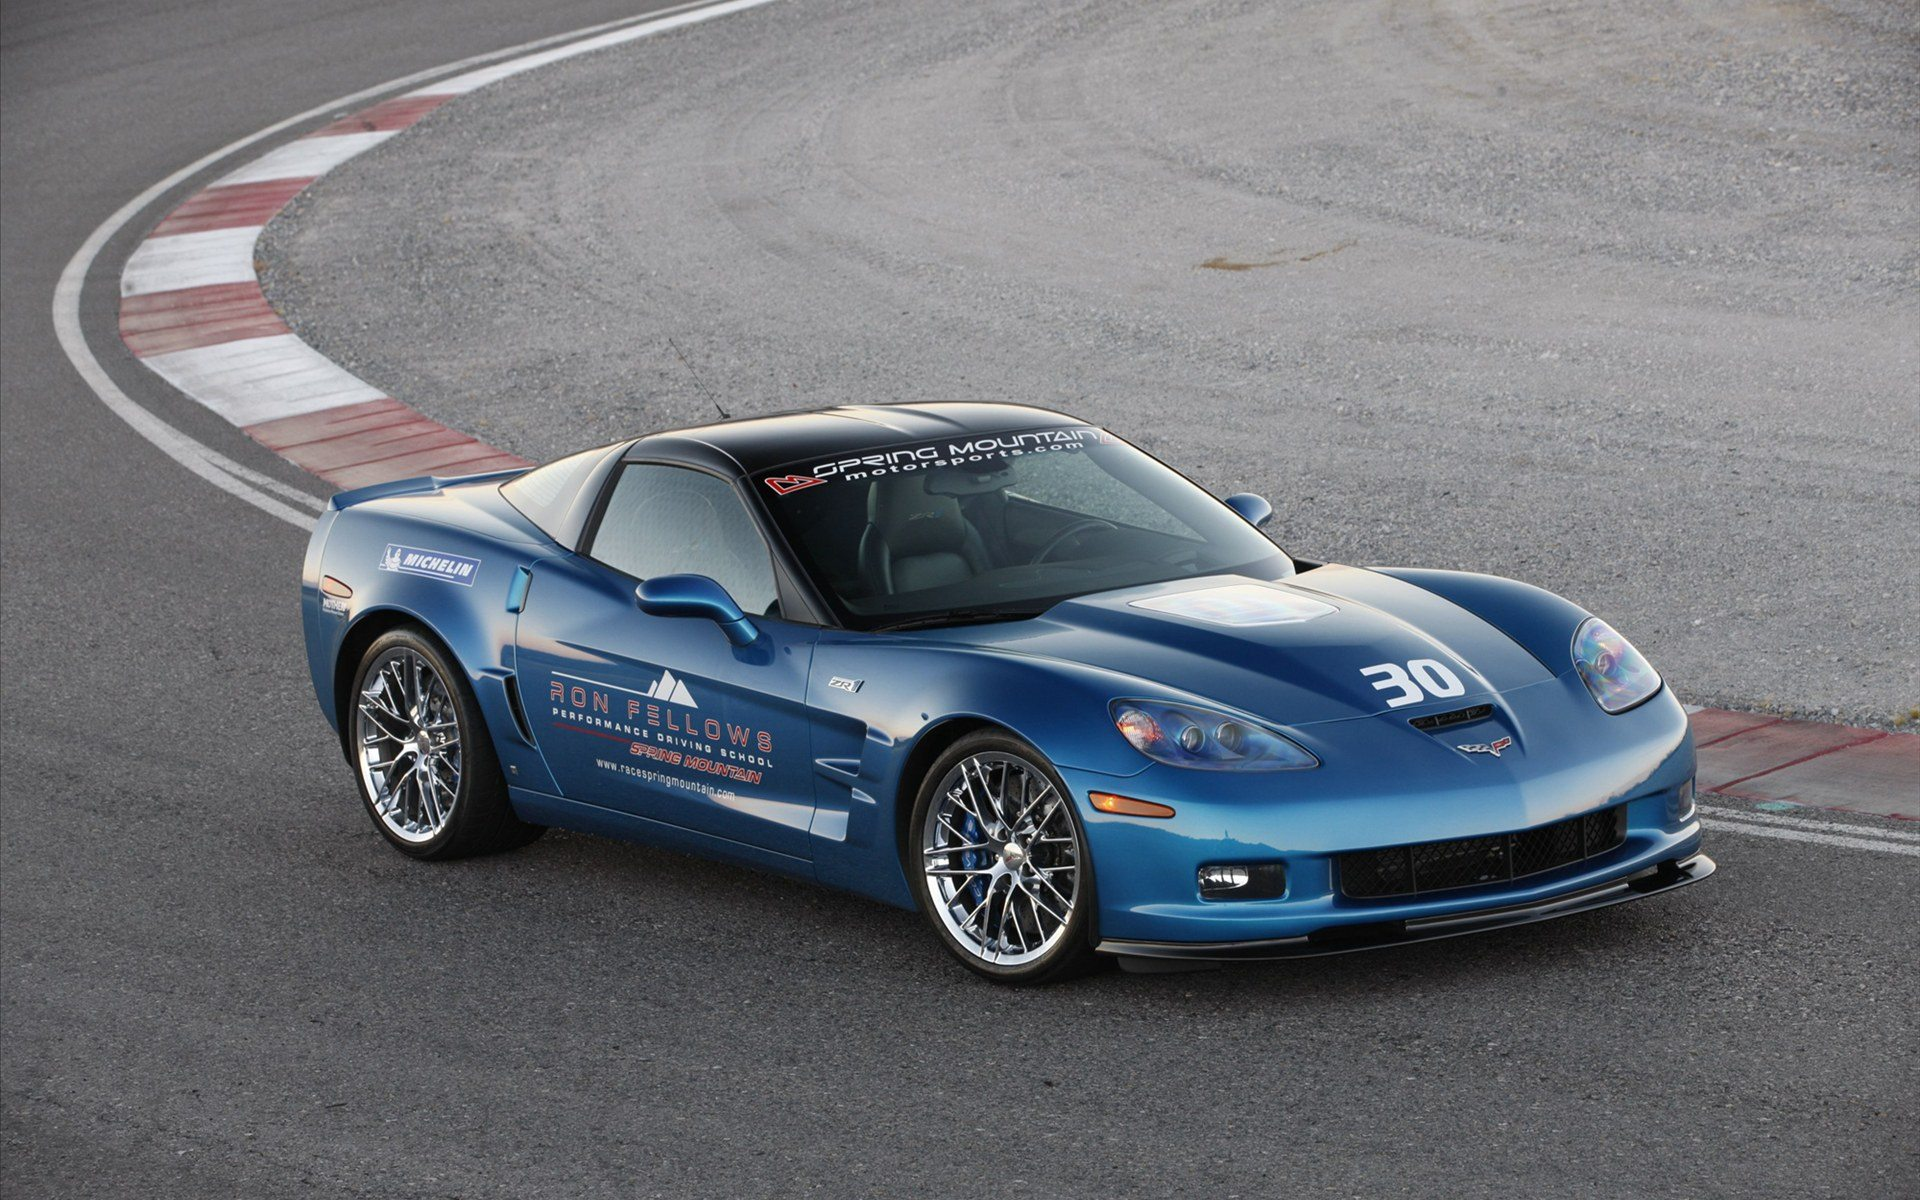 2012 Chevrolet Corvette ZR1